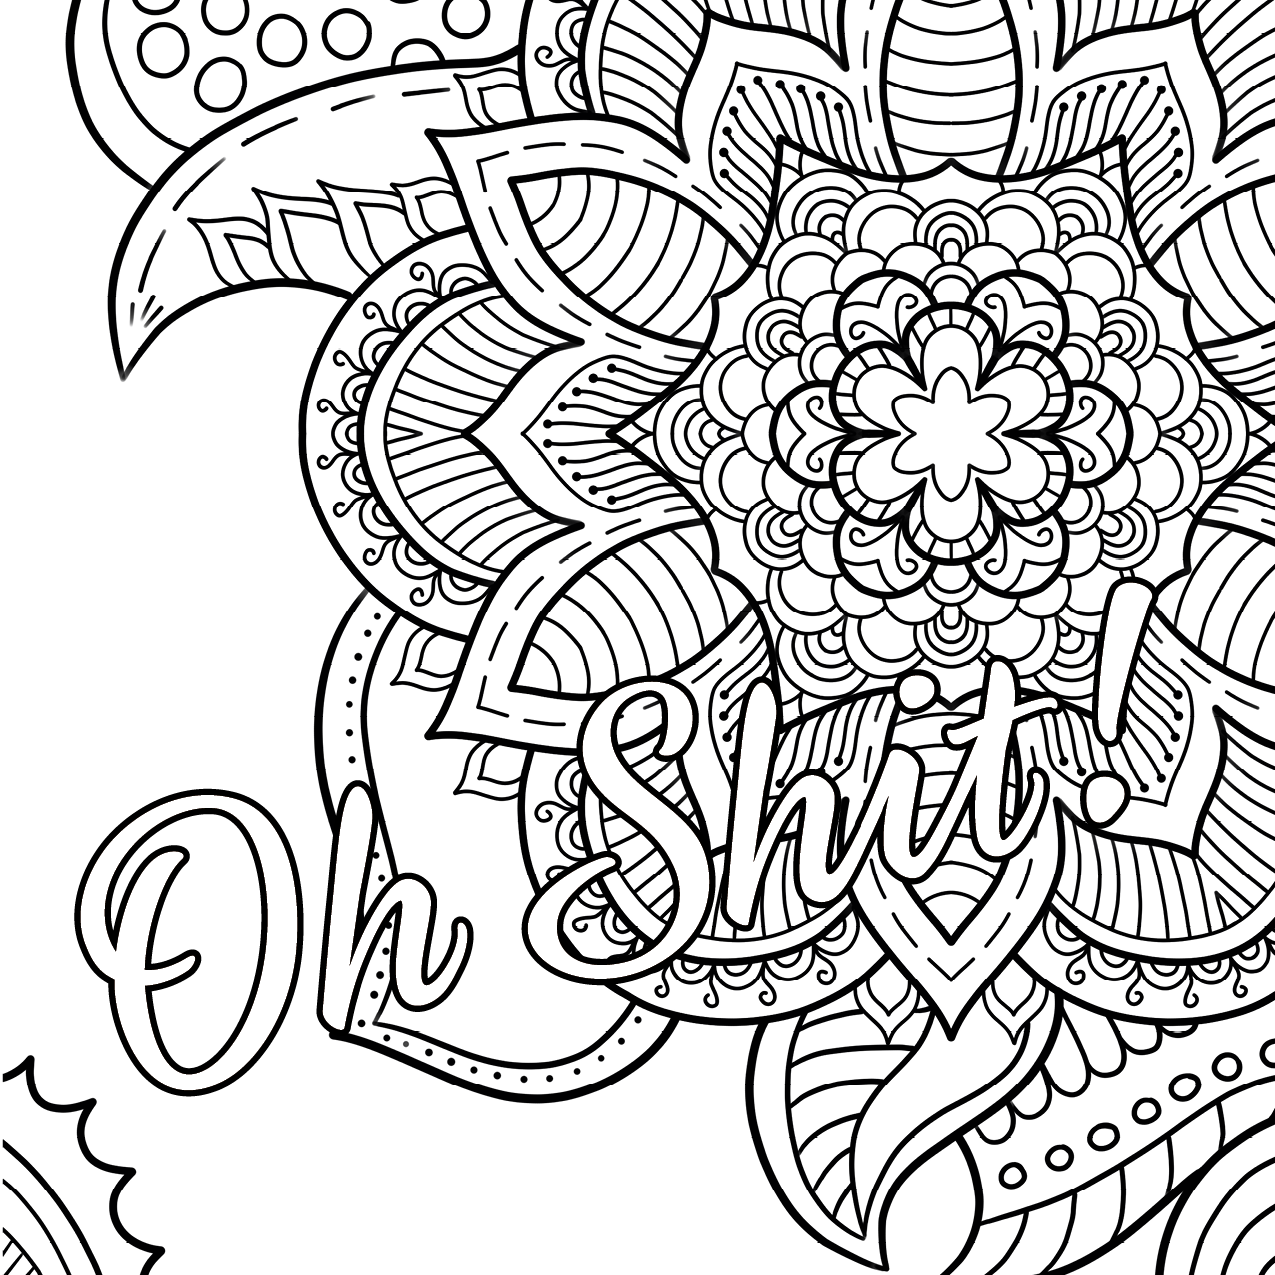 1275x1275 Perfect Free Printable Coloring Pages For Adul